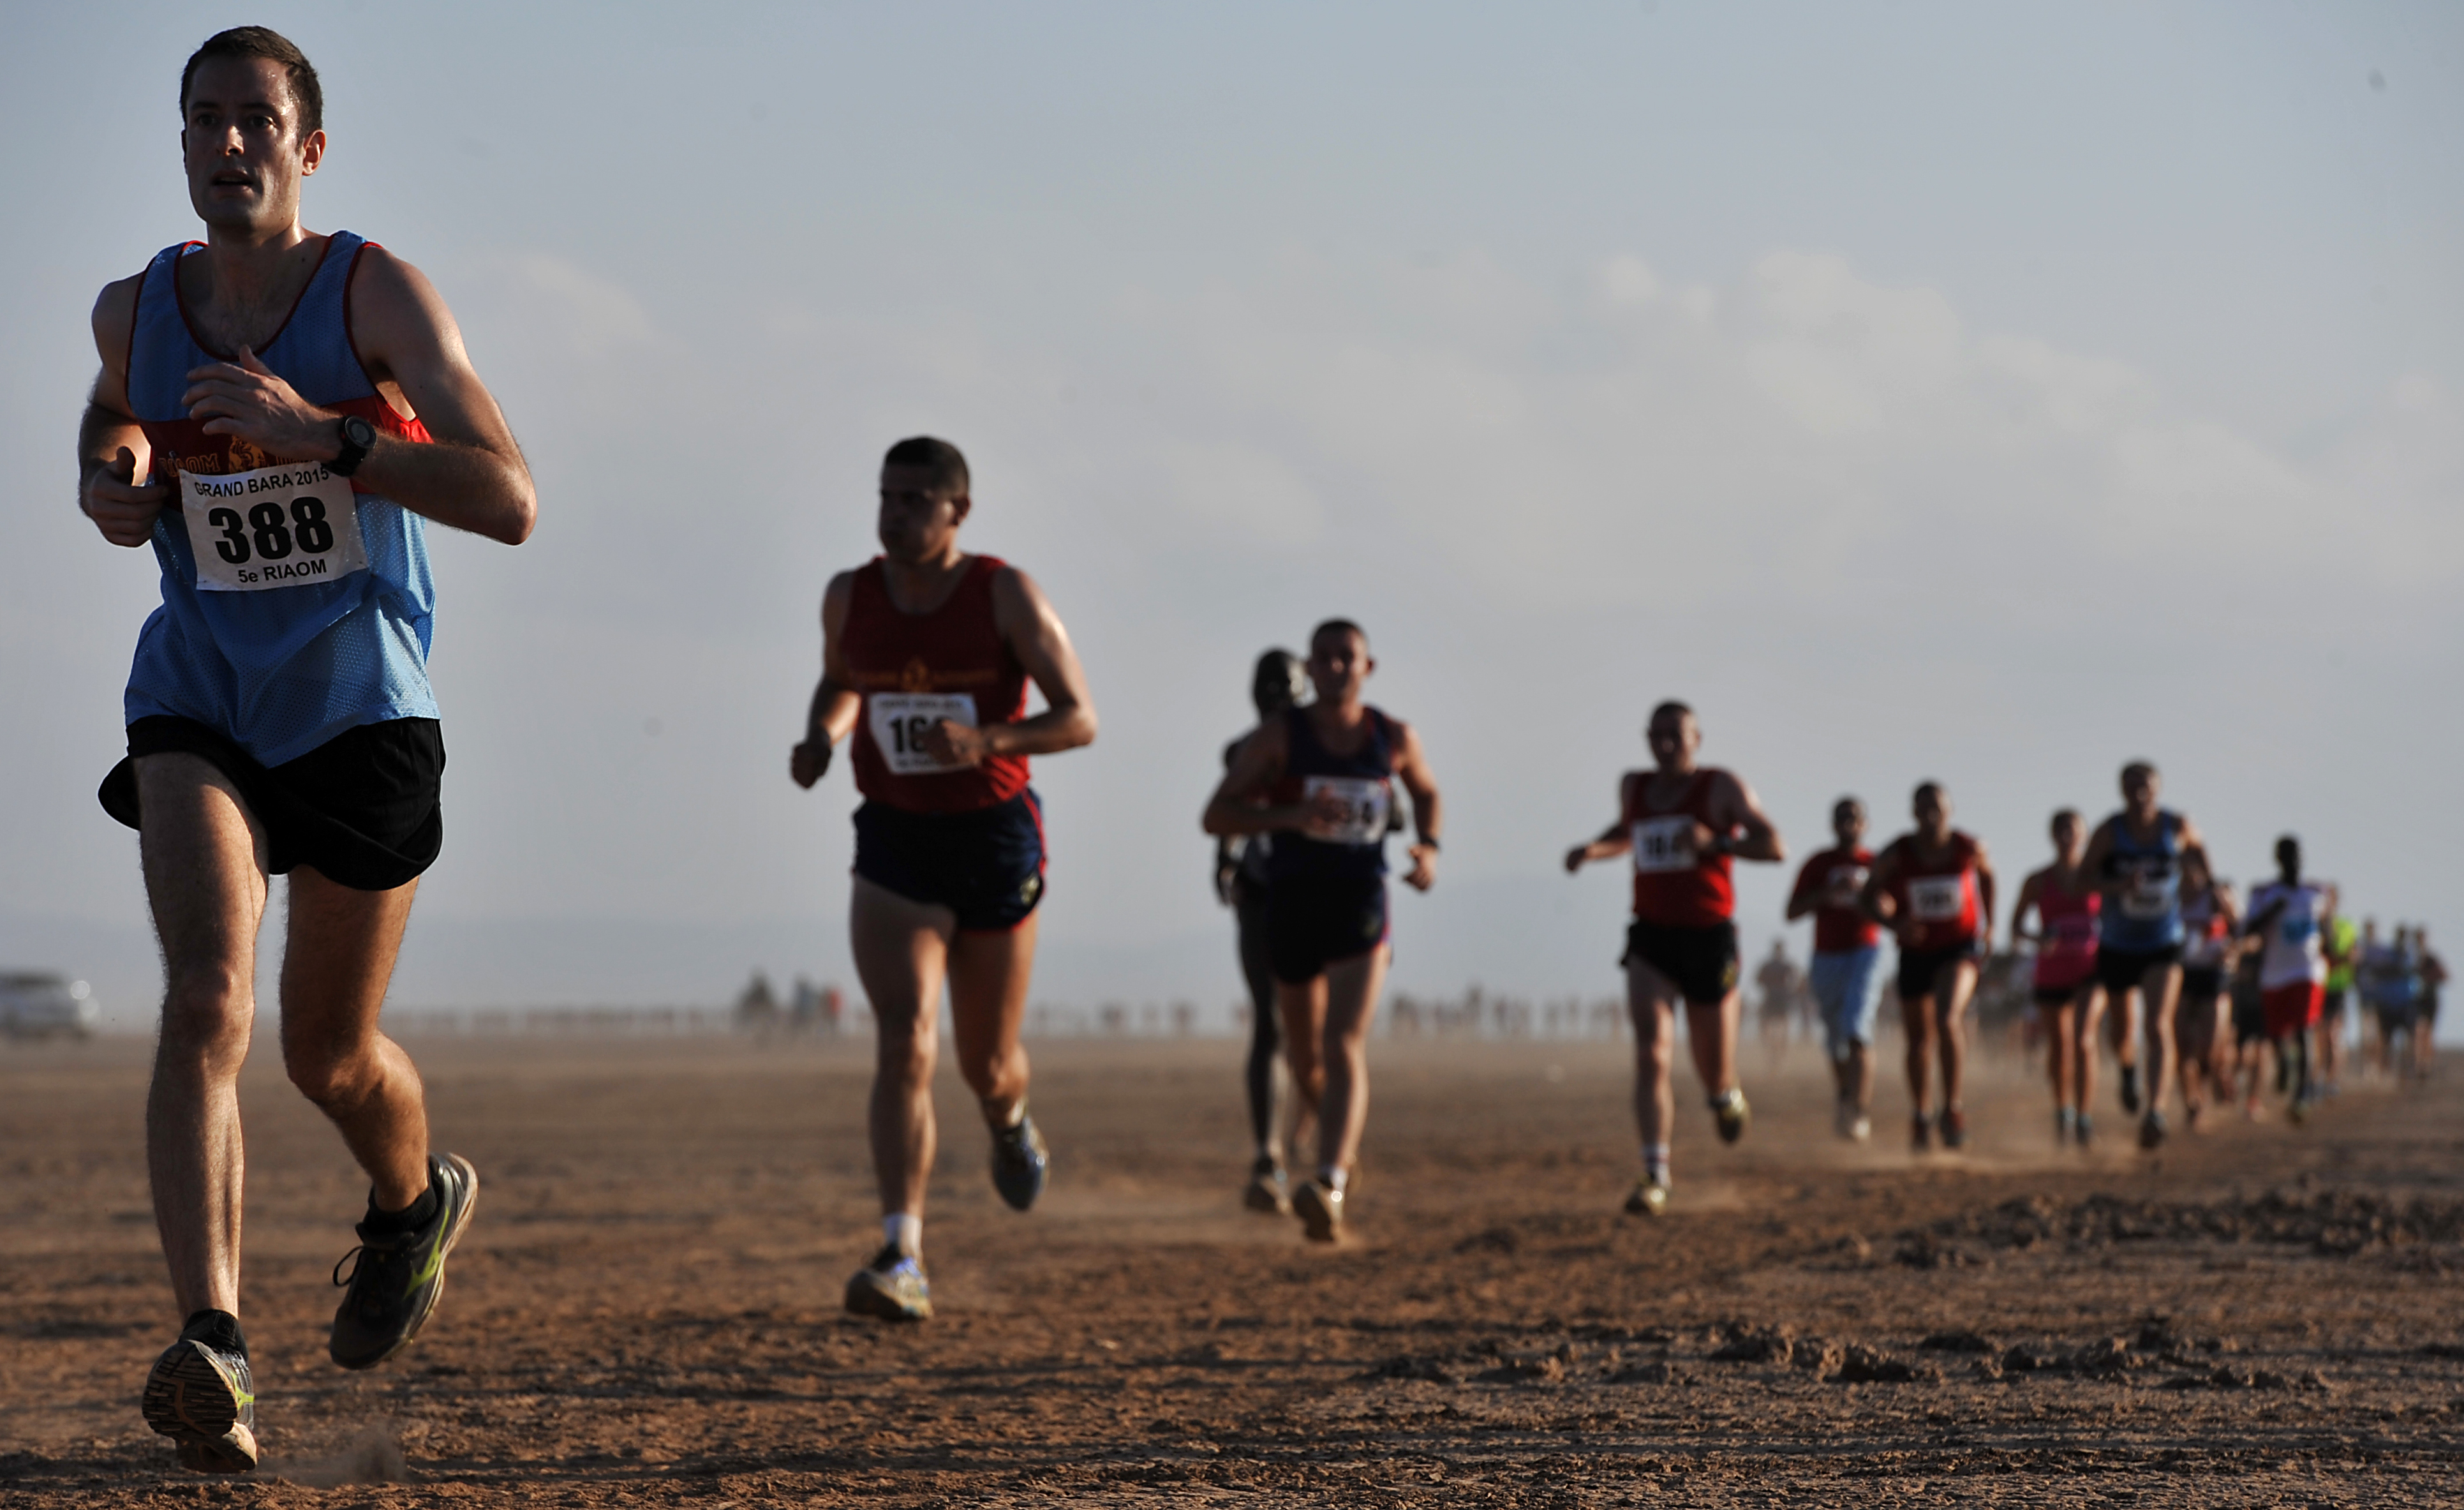 Runners make their way across the Grand Bara Desert during the Annual Grand Bara 15K race Dec. 17, 2015, in Djibouti. The race was originally established in 1982 as an internal event for the French, organized by the 13th demi-brigade of the French Foreign Legion until 2010. When the Legionaires left Djibouti, the French 5th inter-army regiment took over. (U.S. Air Force photo by Tech. Sgt. Dan DeCook)